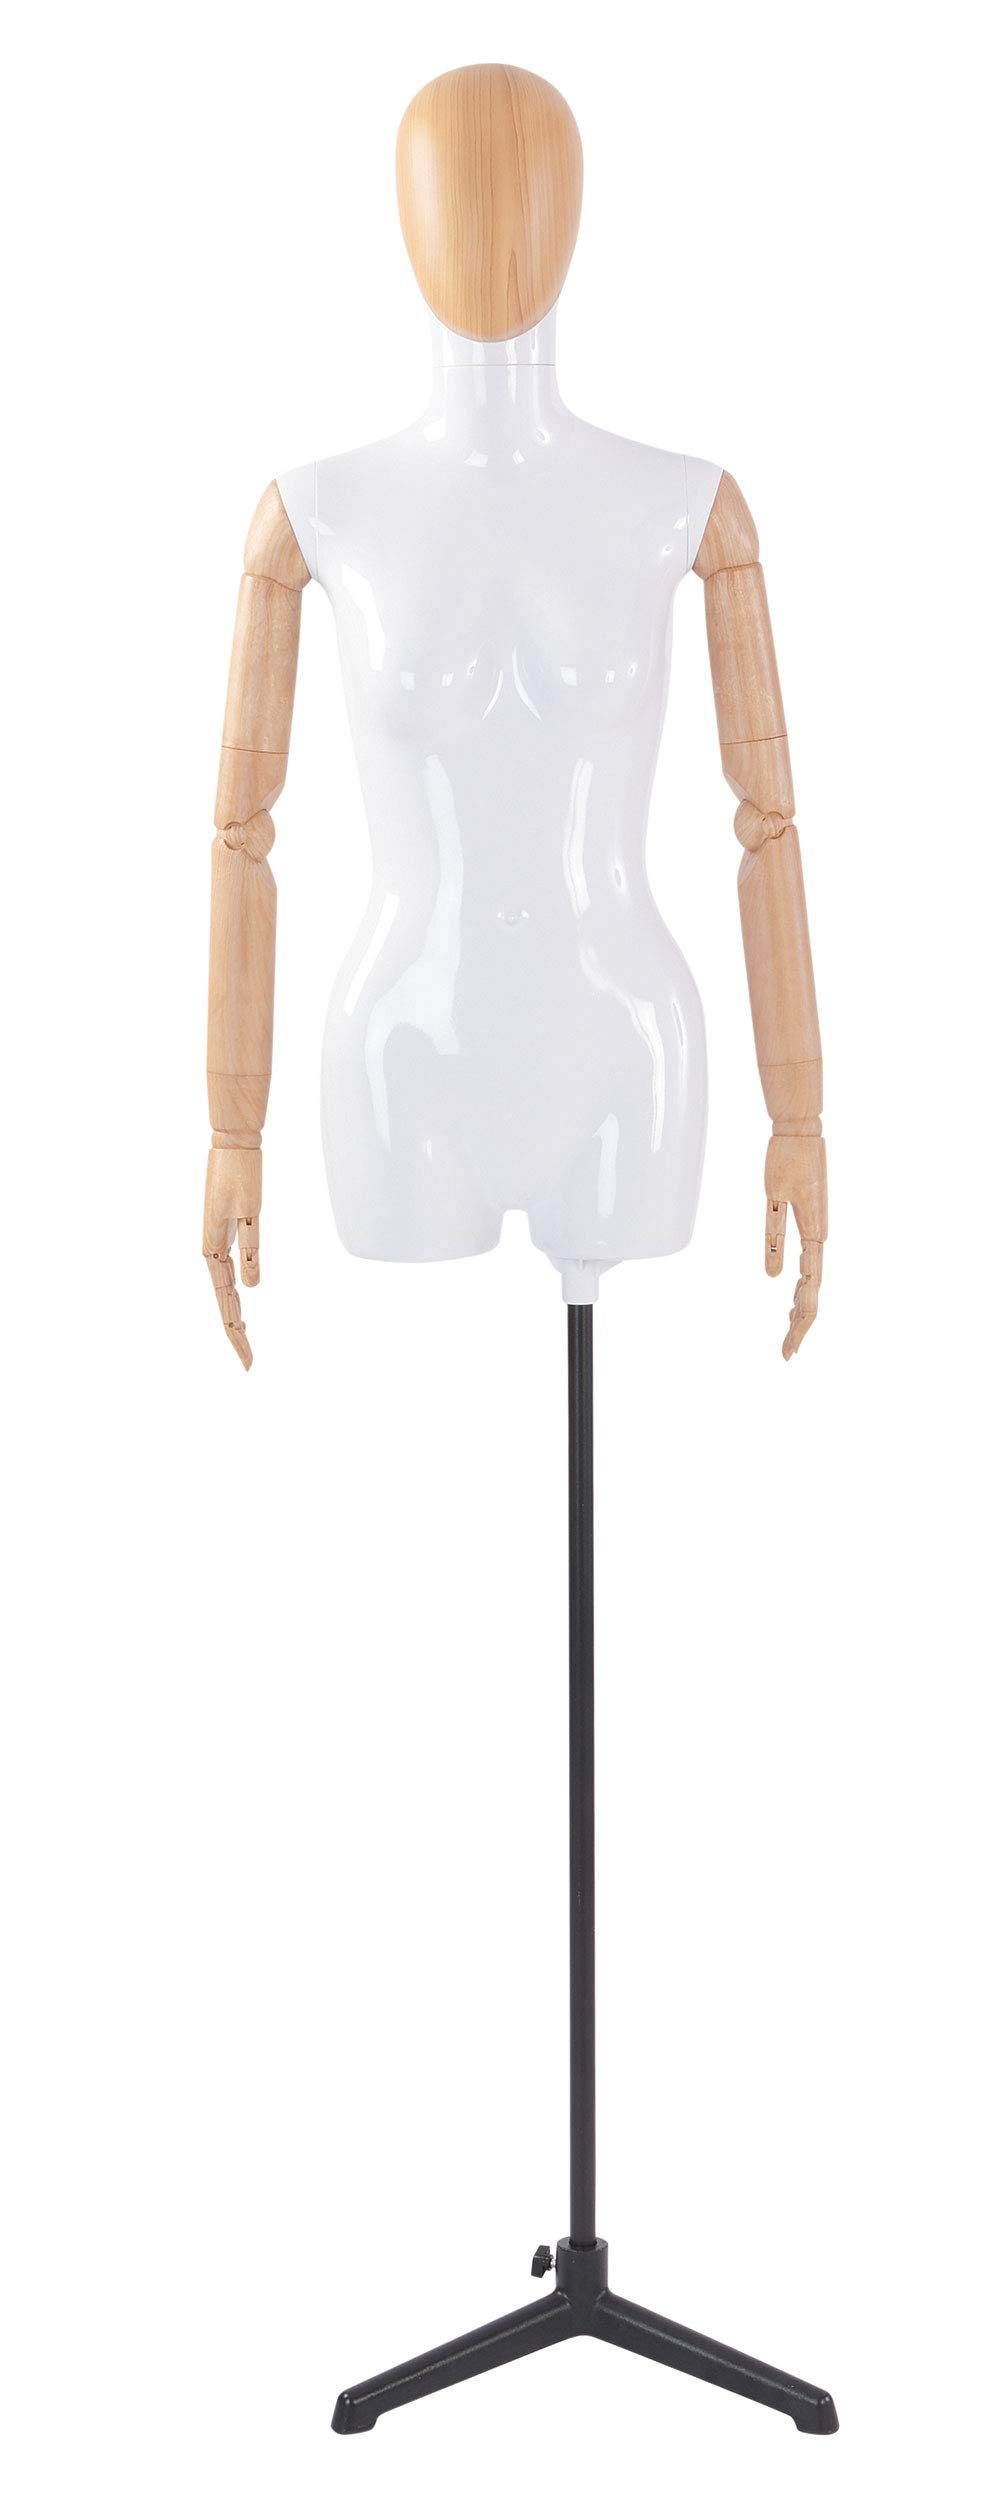 Female Glossy White ¾ Body Mannequin with Wood Egg Head and Wood Posable Arms